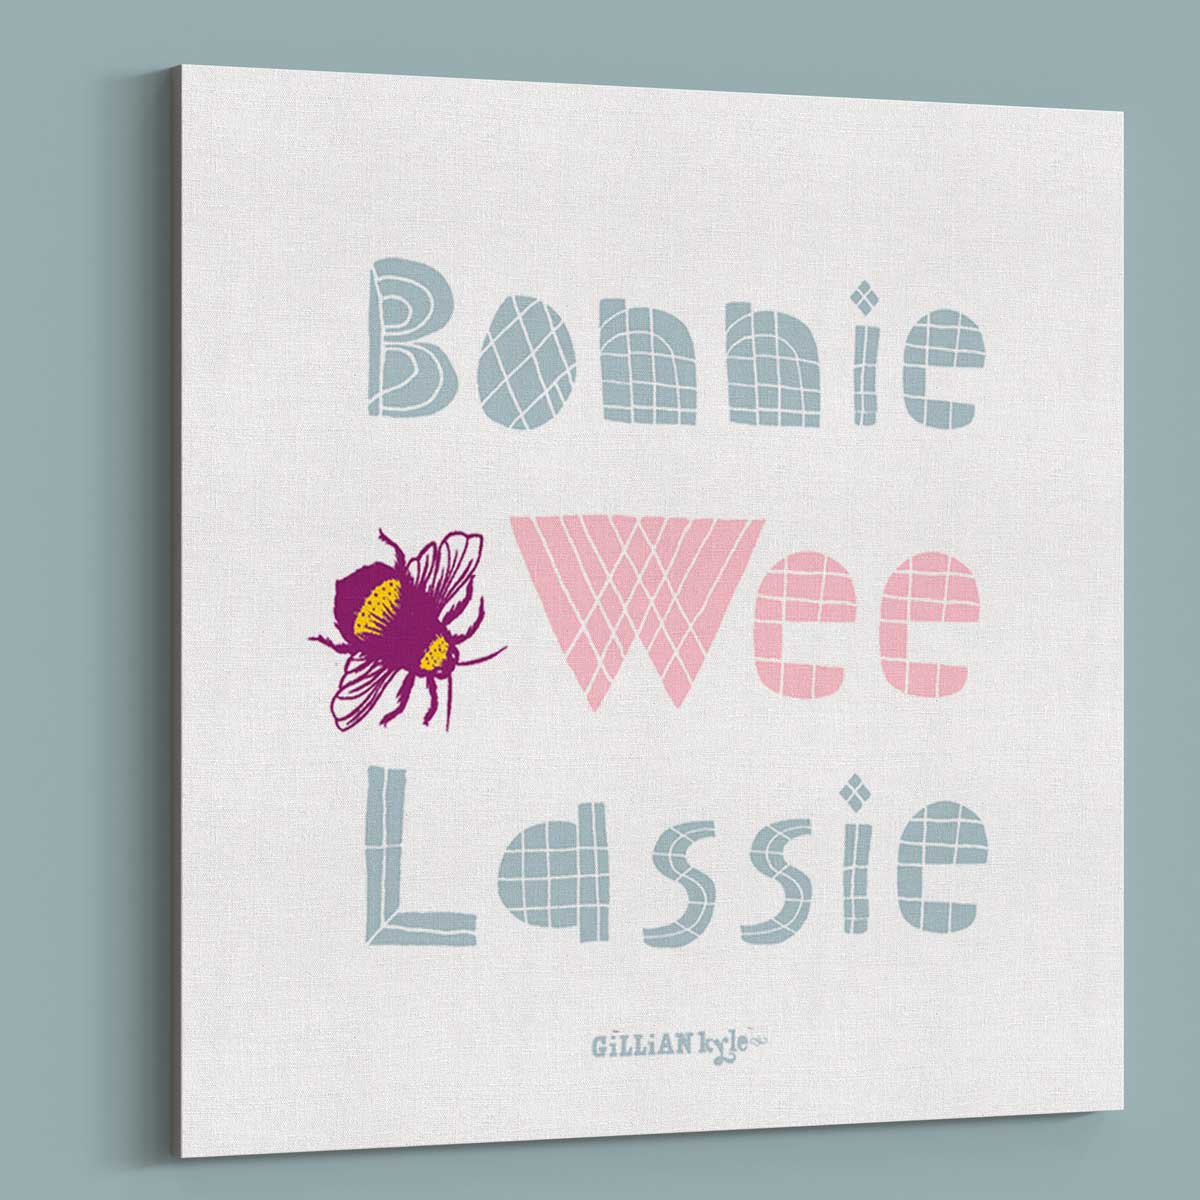 Gillian Kyle Scottish Art Gallery Bonnie Wee Lie New Baby Gift Canvas Print